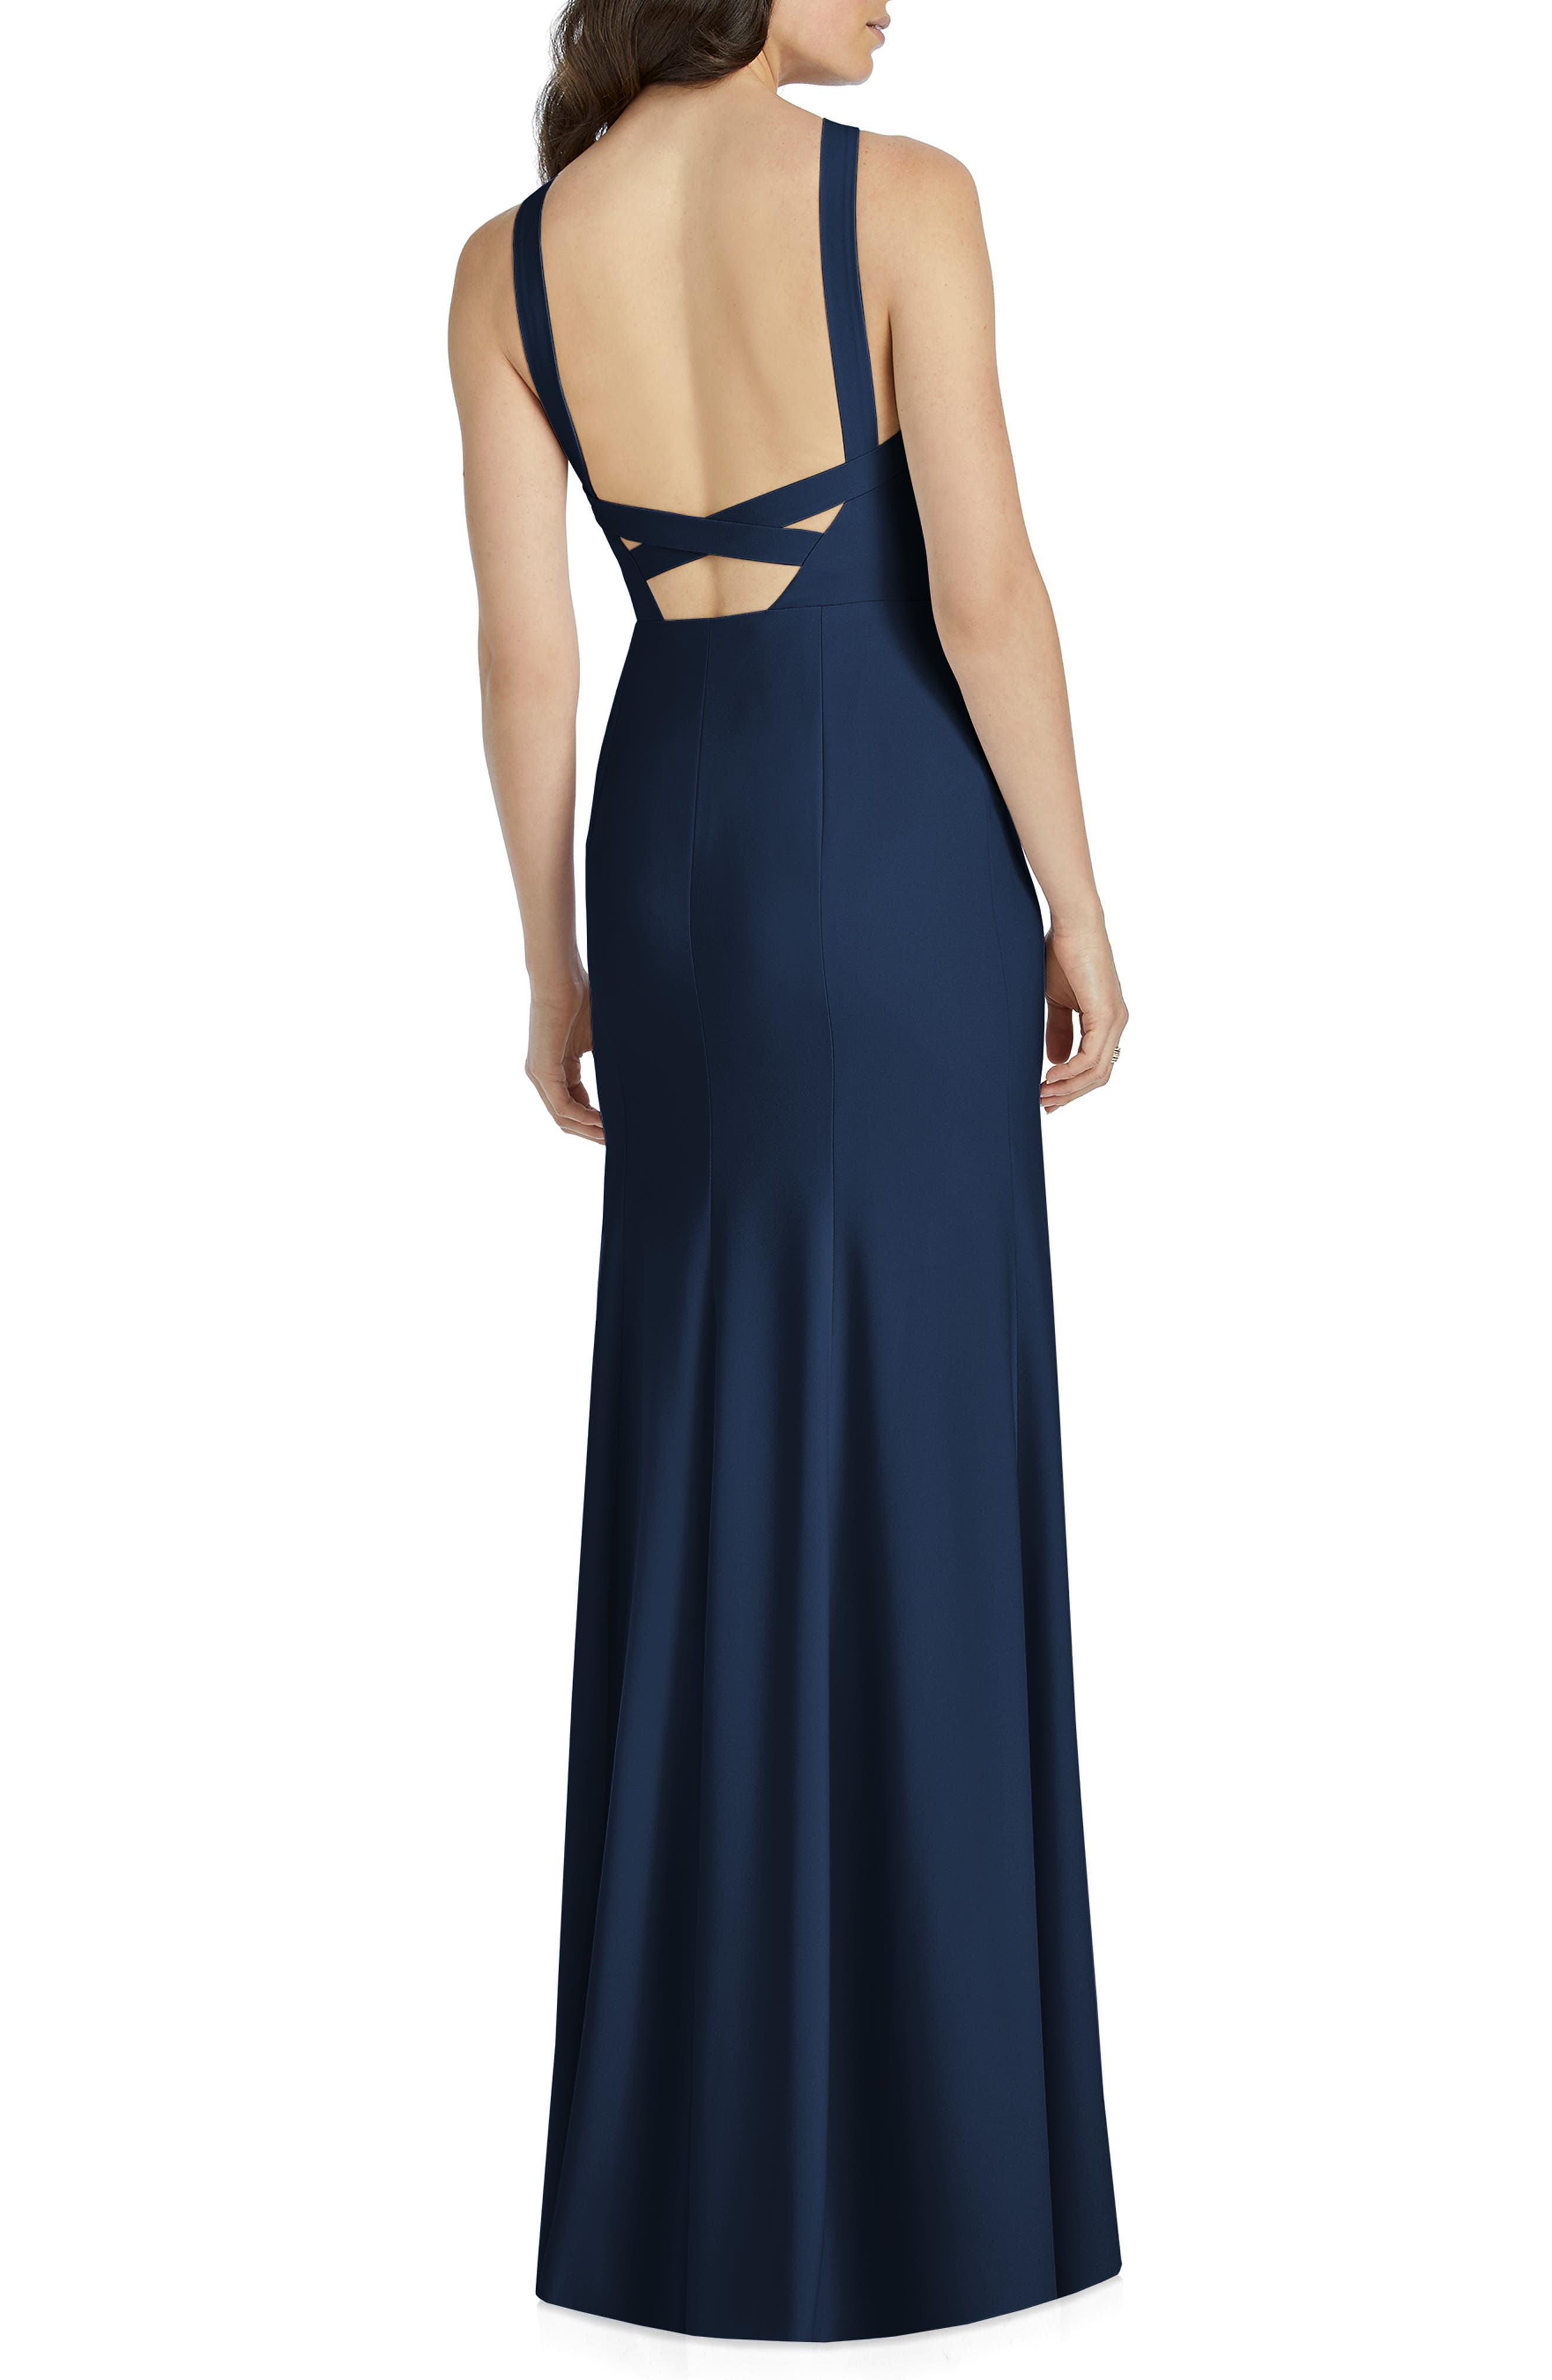 DESSY COLLECTION, Cutaway Shoulder Crepe Gown, Alternate thumbnail 2, color, MIDNIGHT